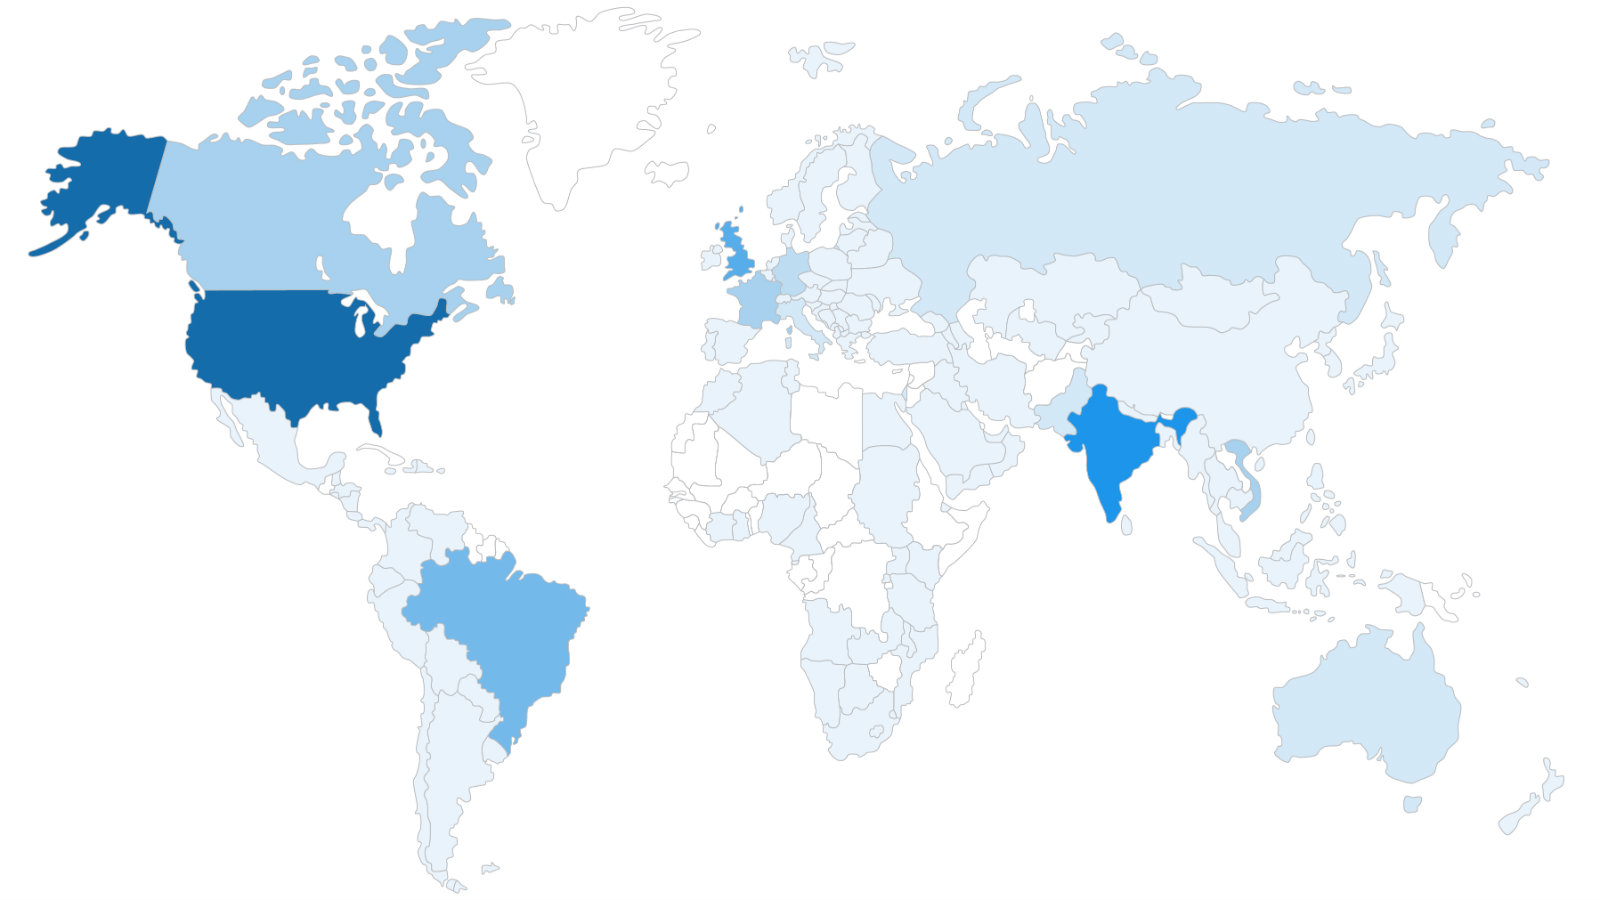 Kashmir On World Map.Does Facebook Think Kashmir Is A Part Of China Quartz India